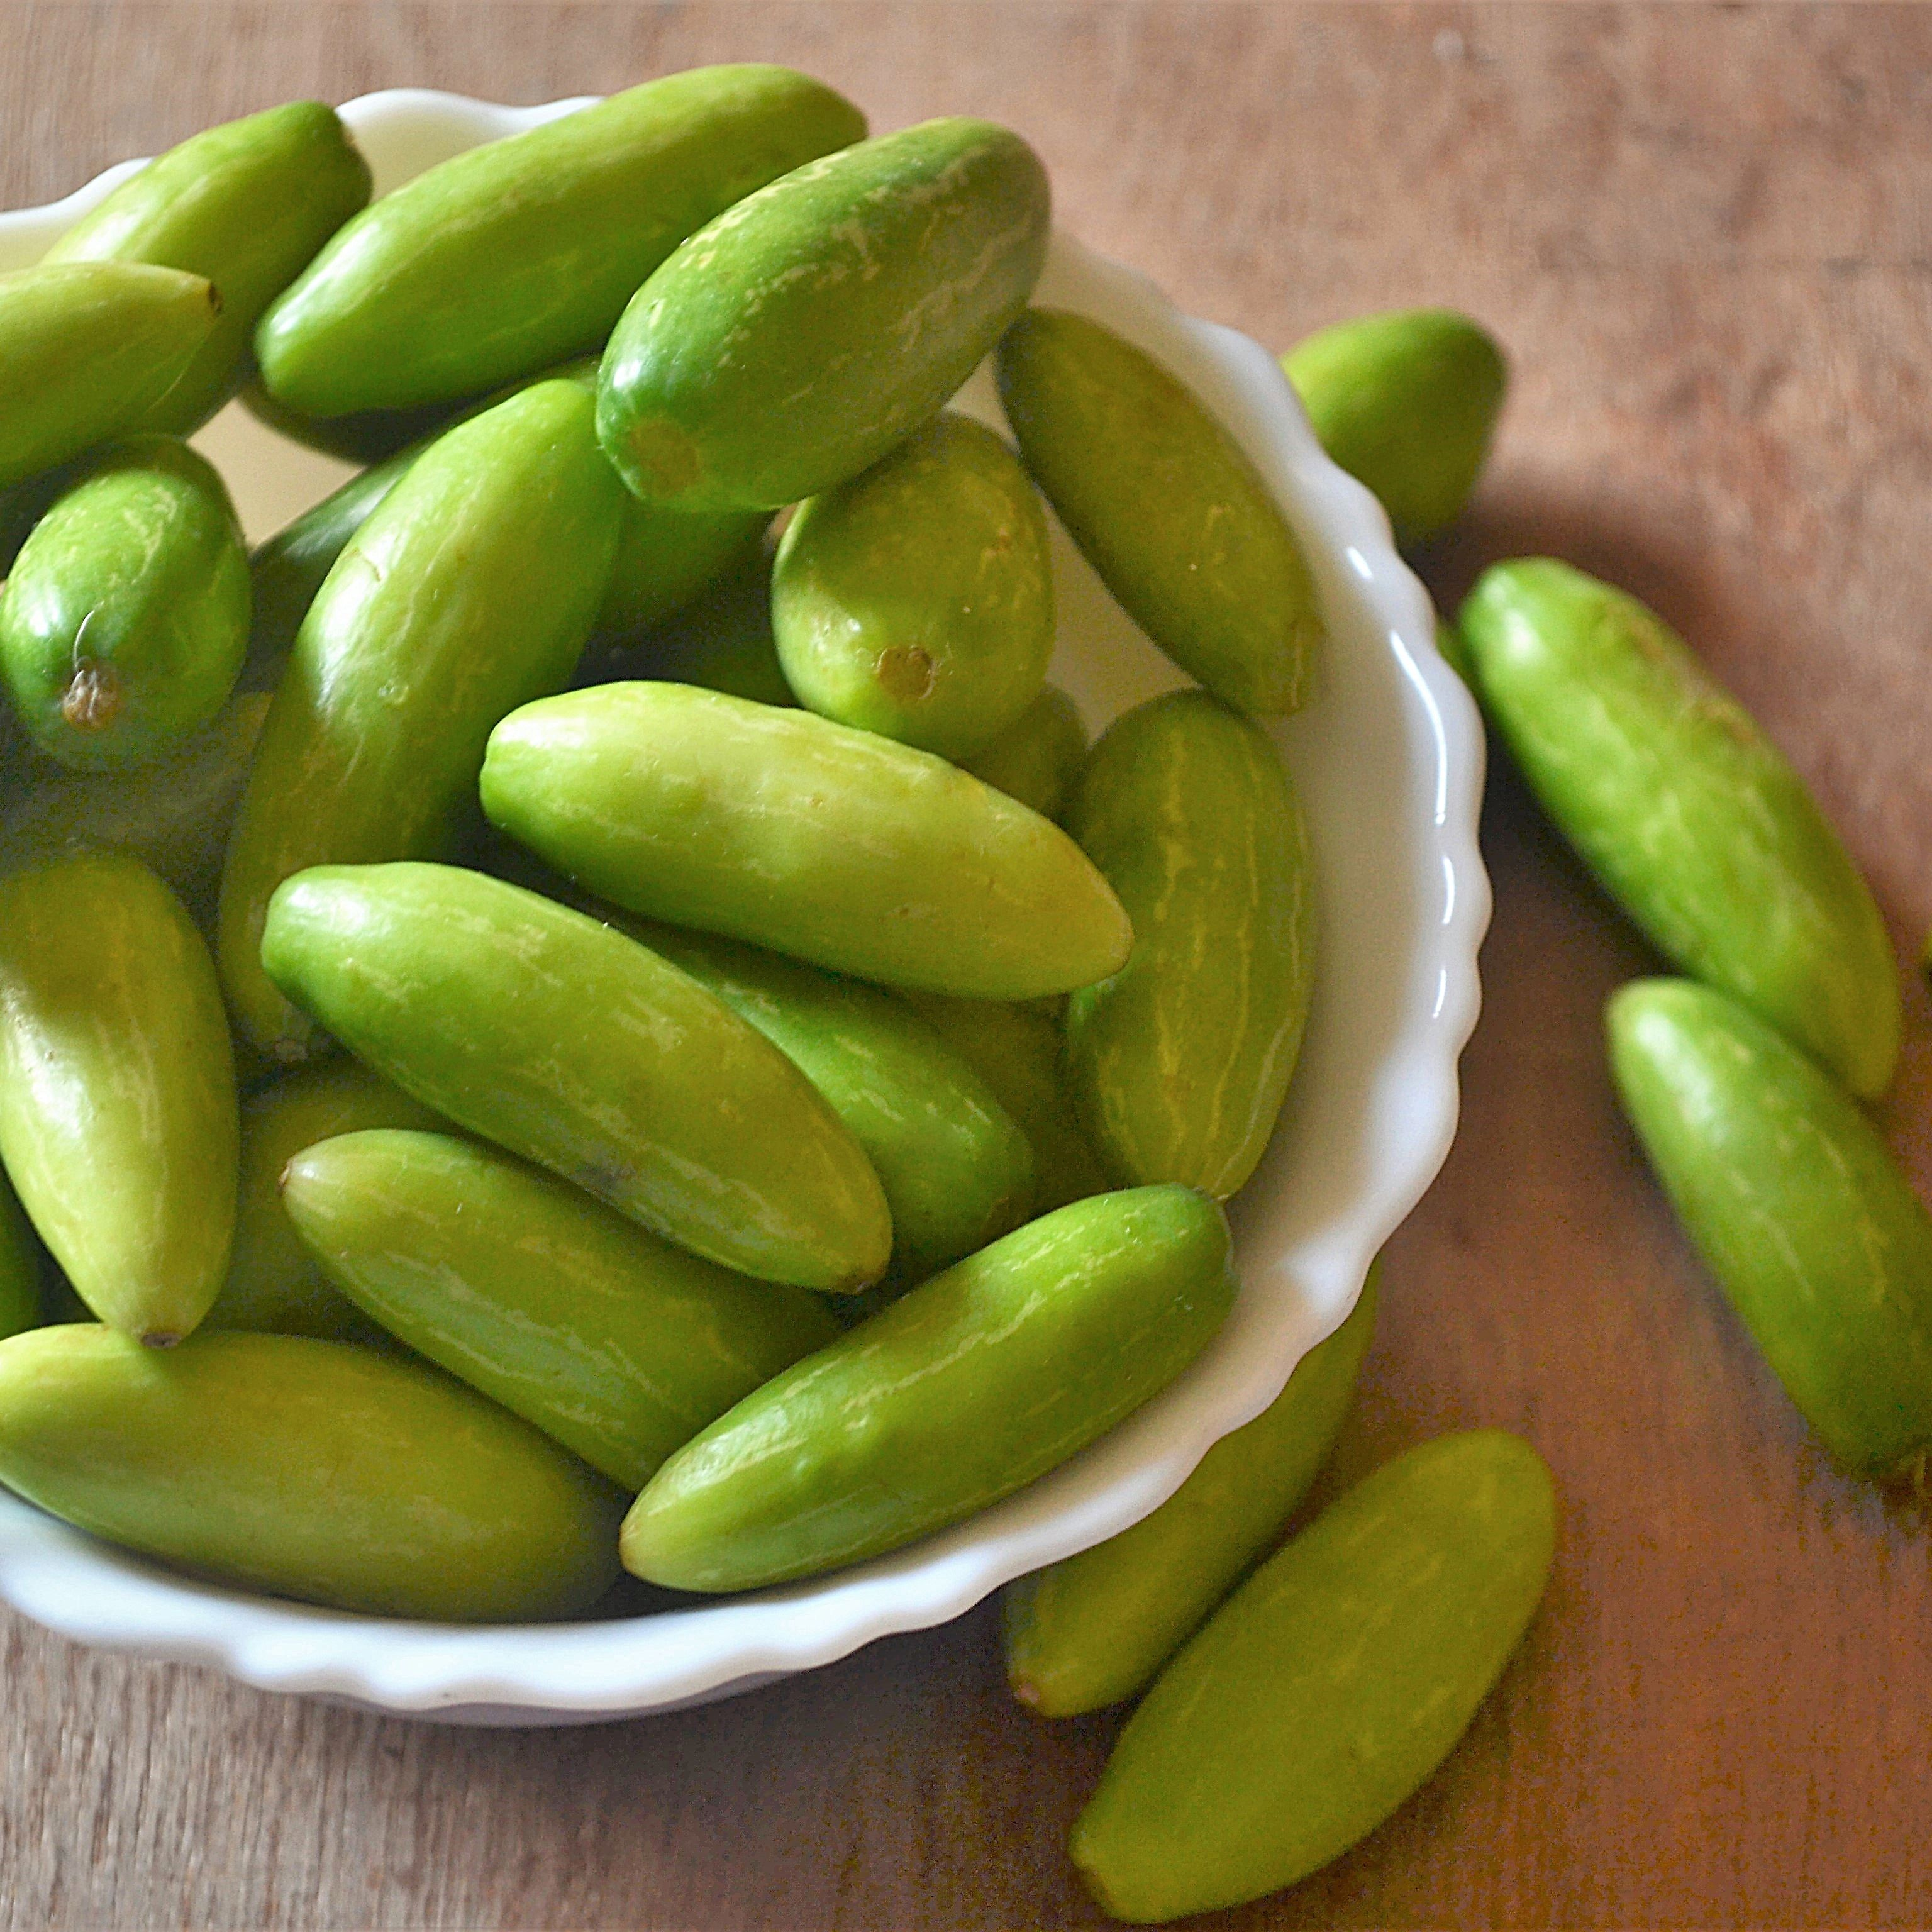 ivy gourd: benefits, side effects, dosage, interactions